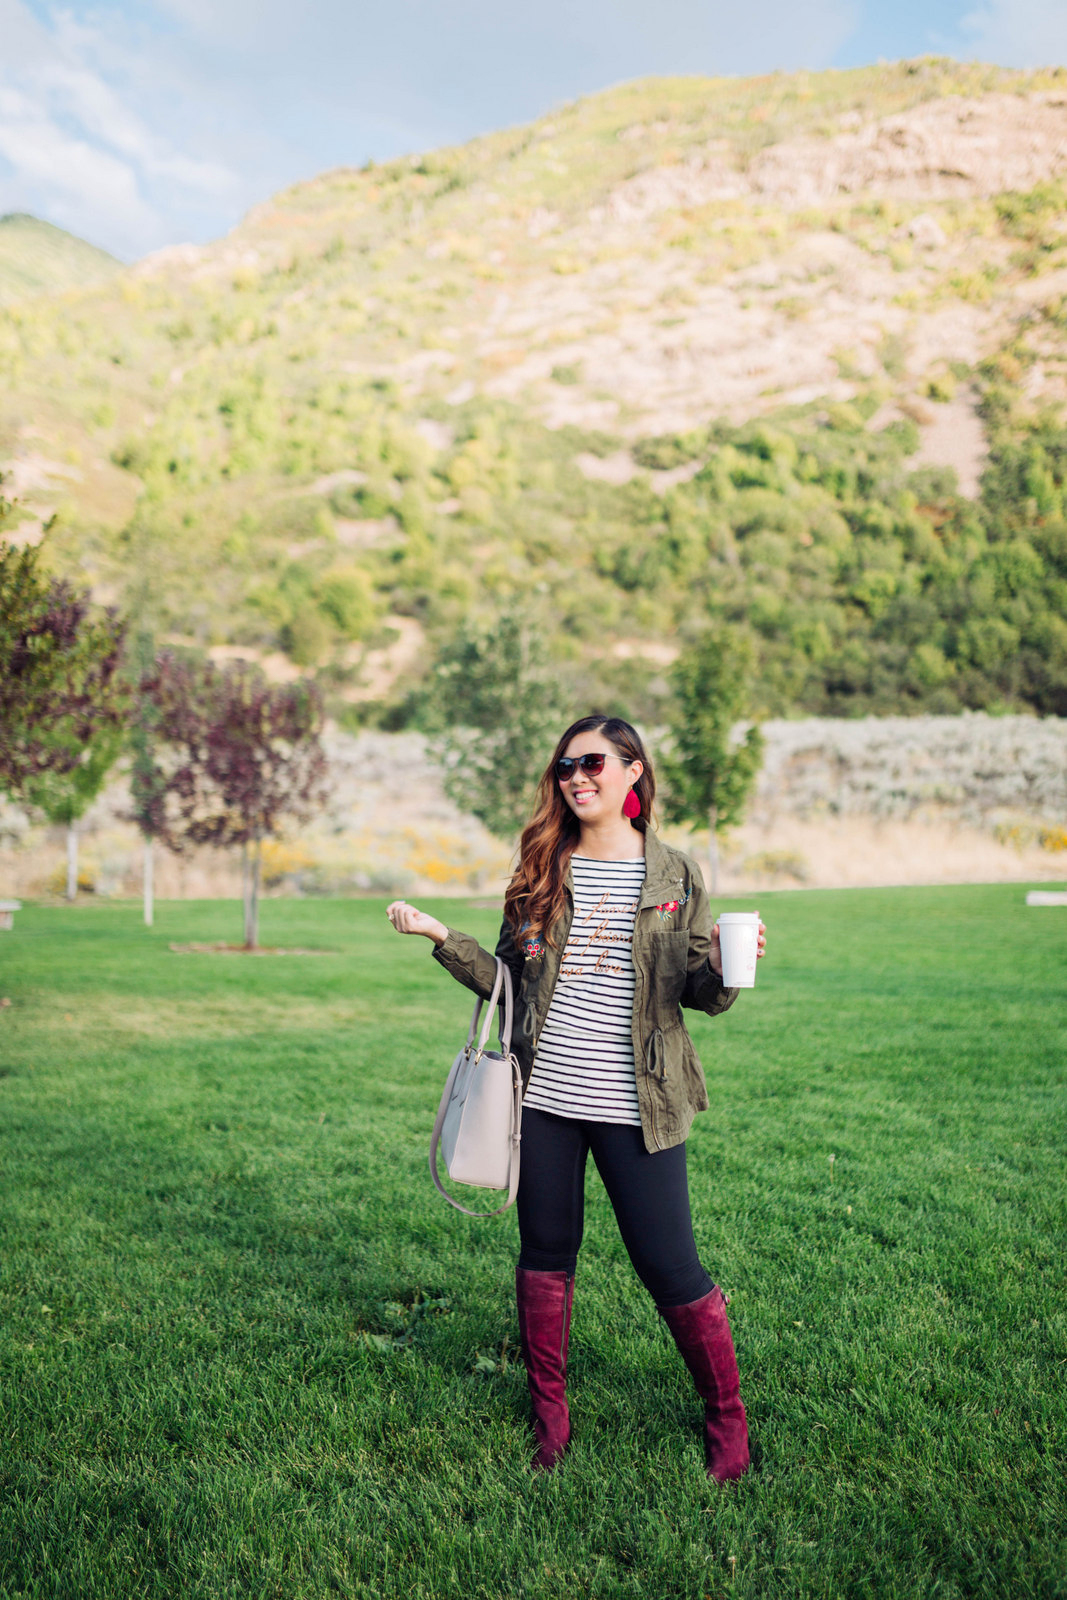 Over the knee boots - Burgundy Knee High Boots For Fall by Utah fashion blogger Sandy A La Mode